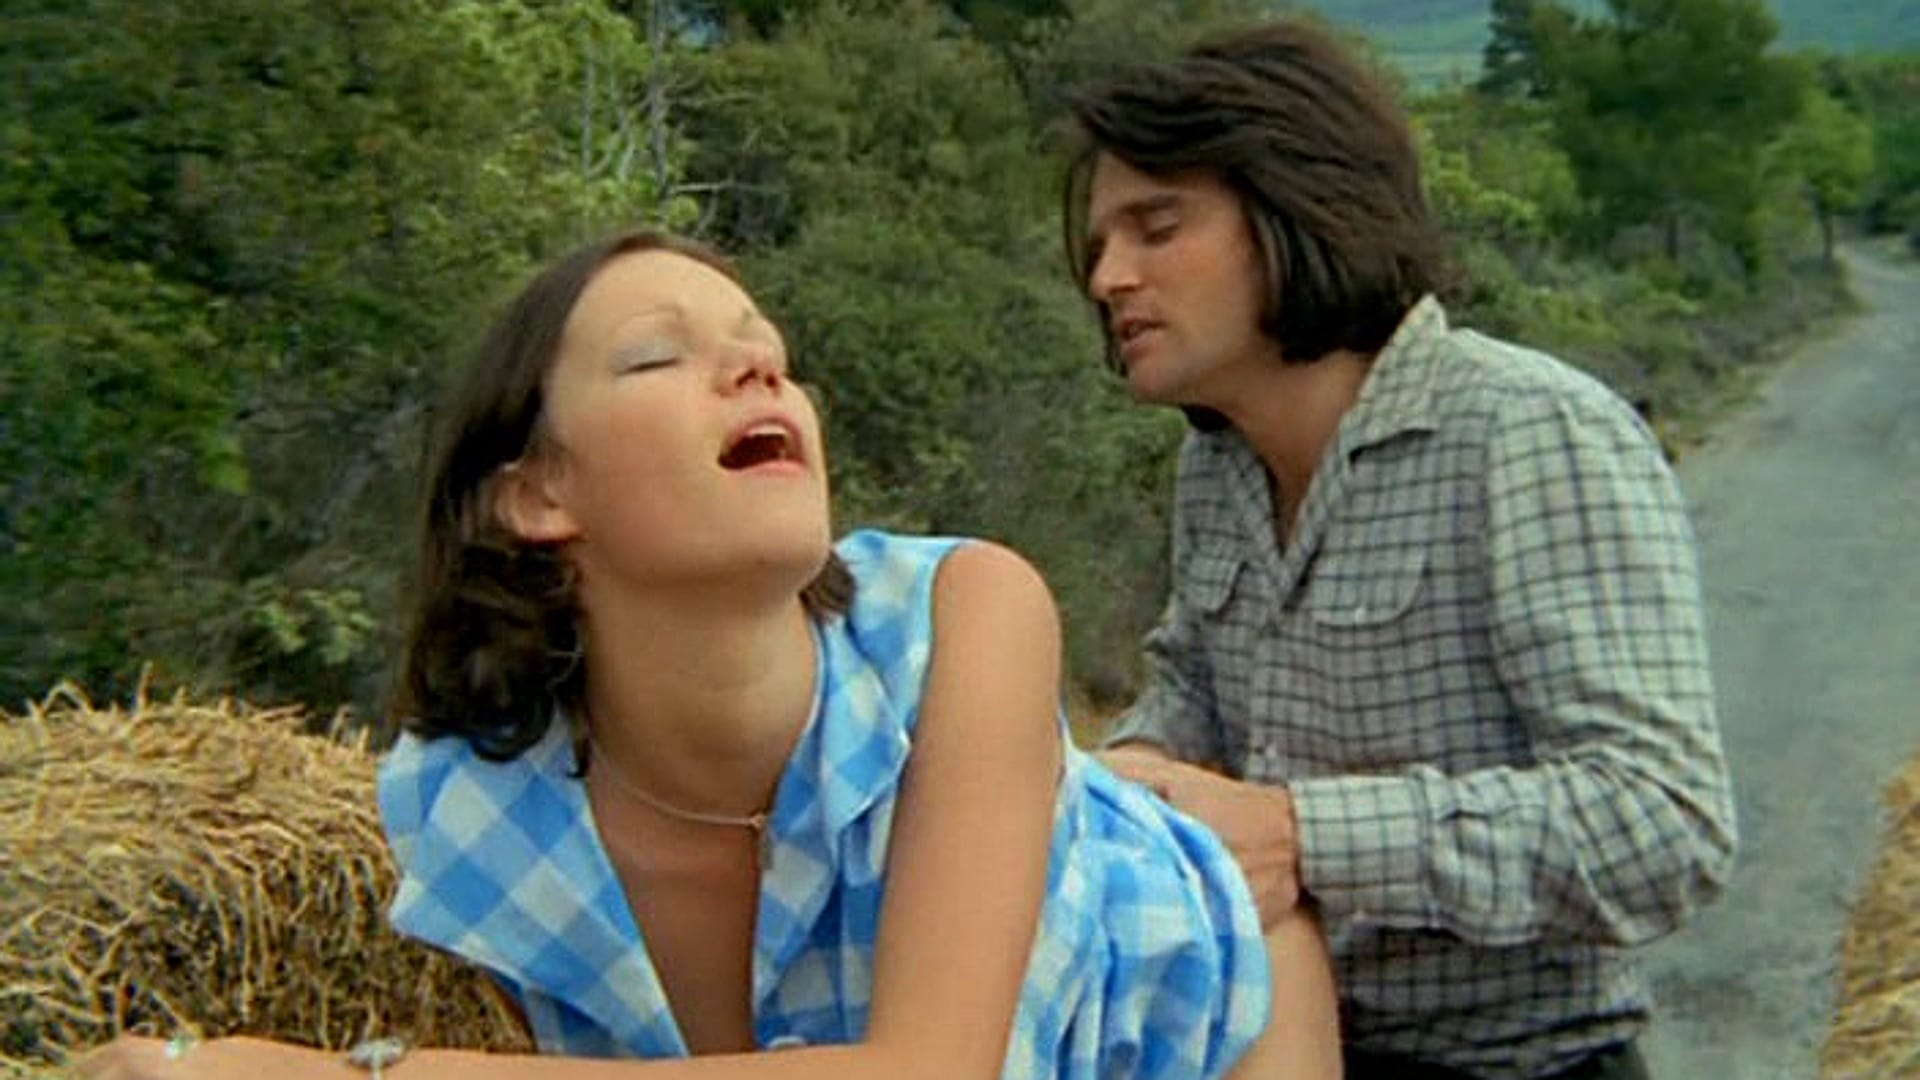 Cathy fille soumise 1977 brigitte lahaie and erica cool - 1 part 4